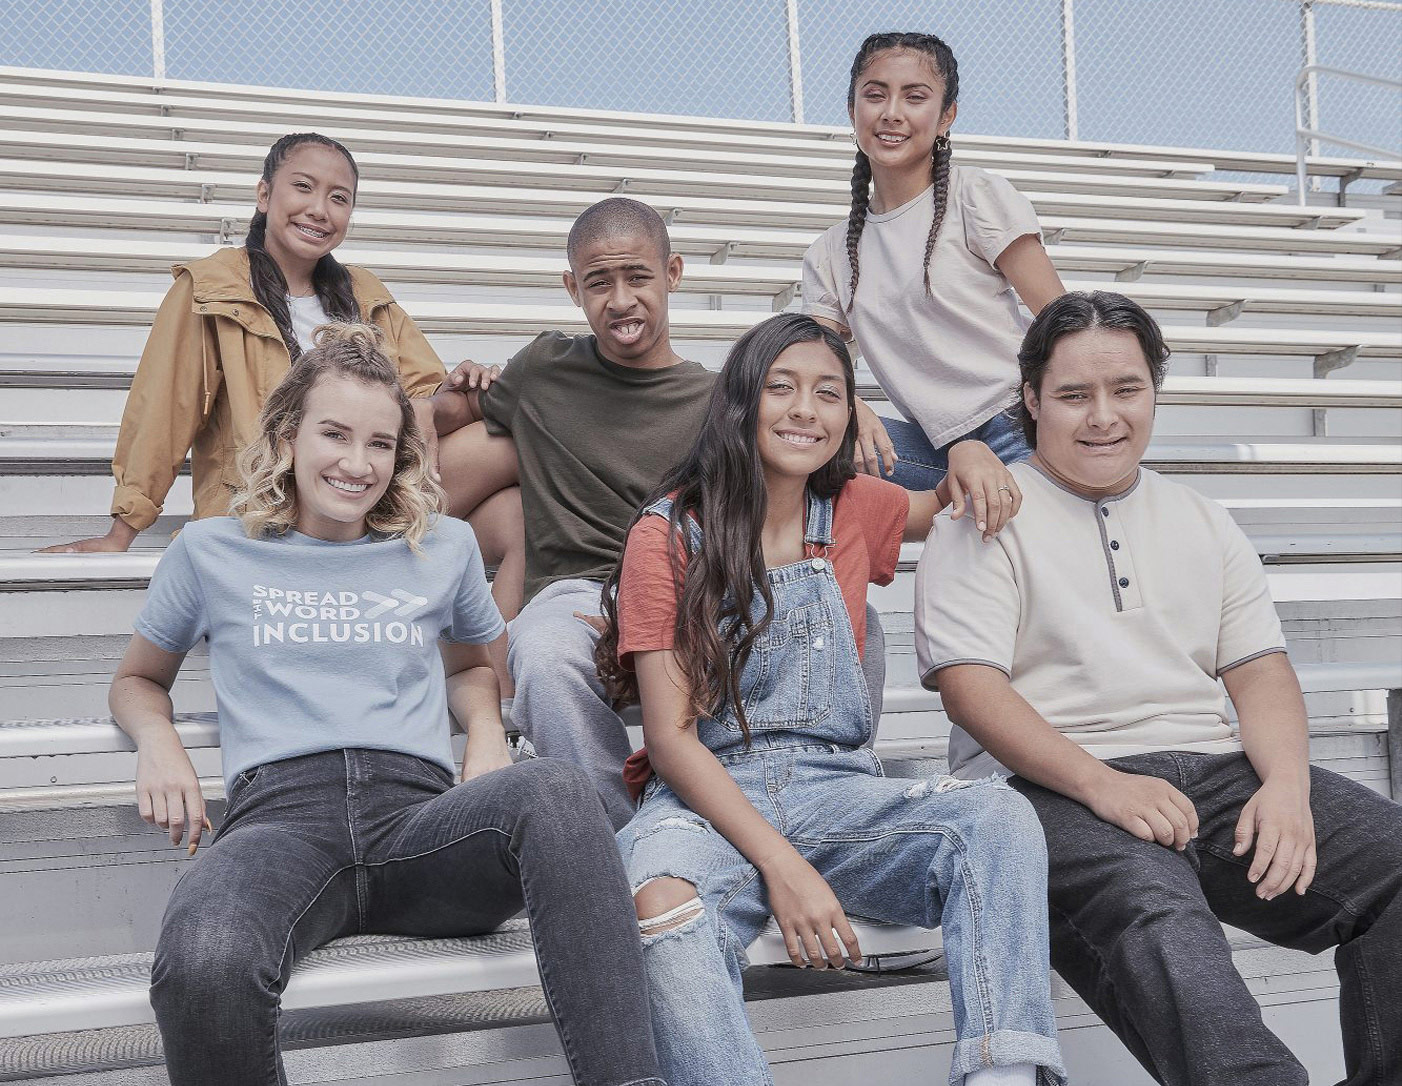 Group of students sitting on bleachers, smiling at the camera.